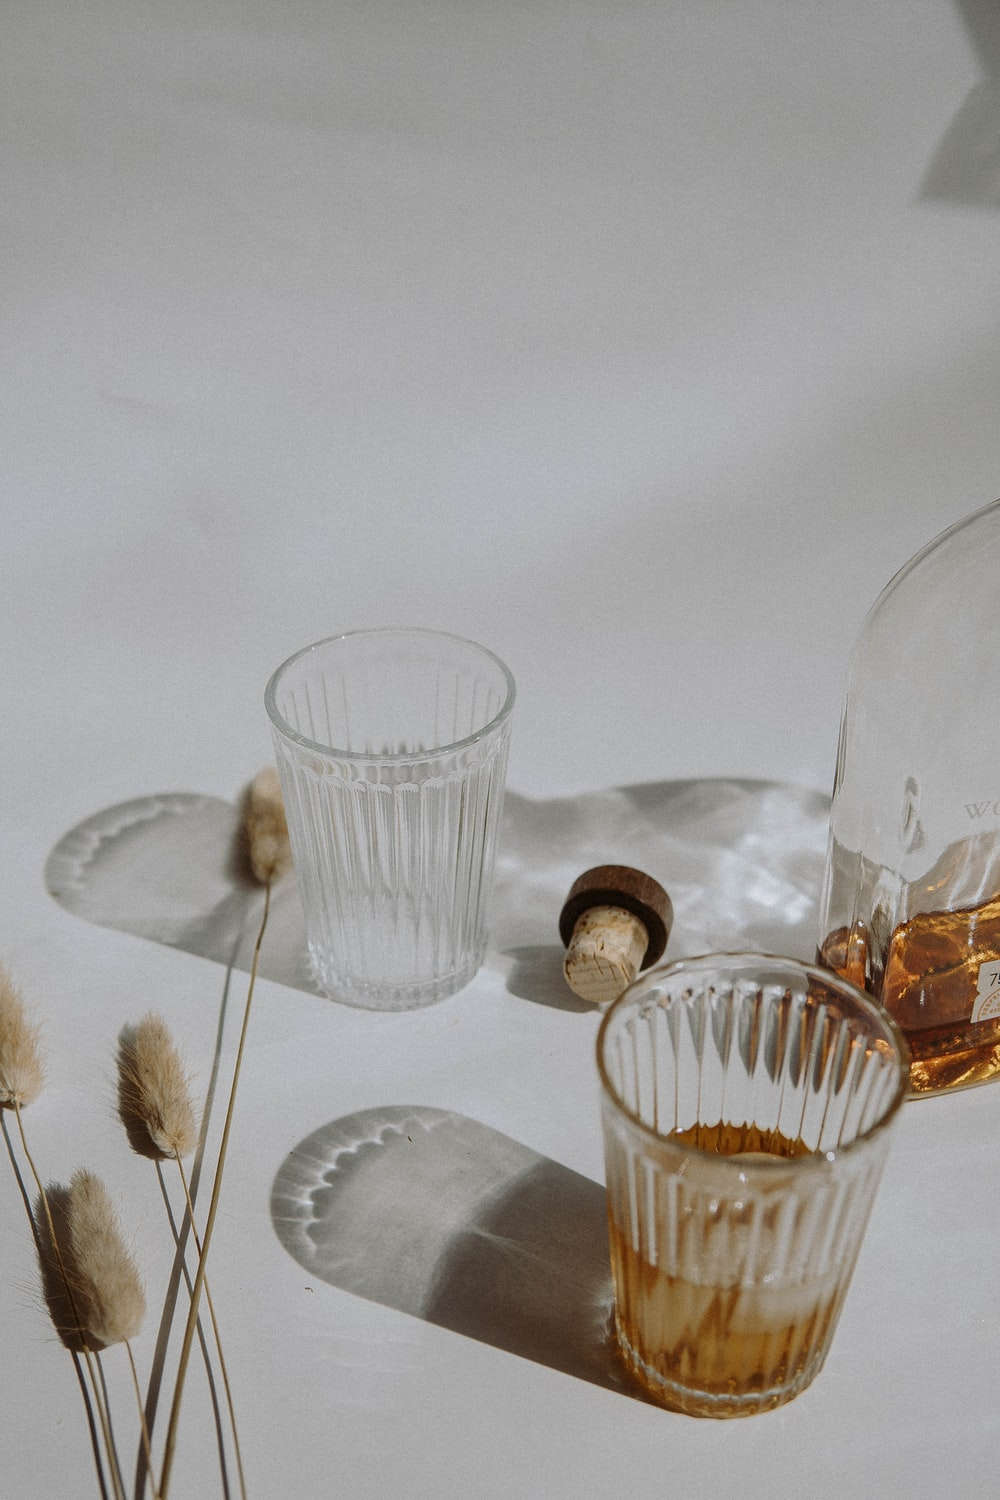 clear drinking glass on white table cloth